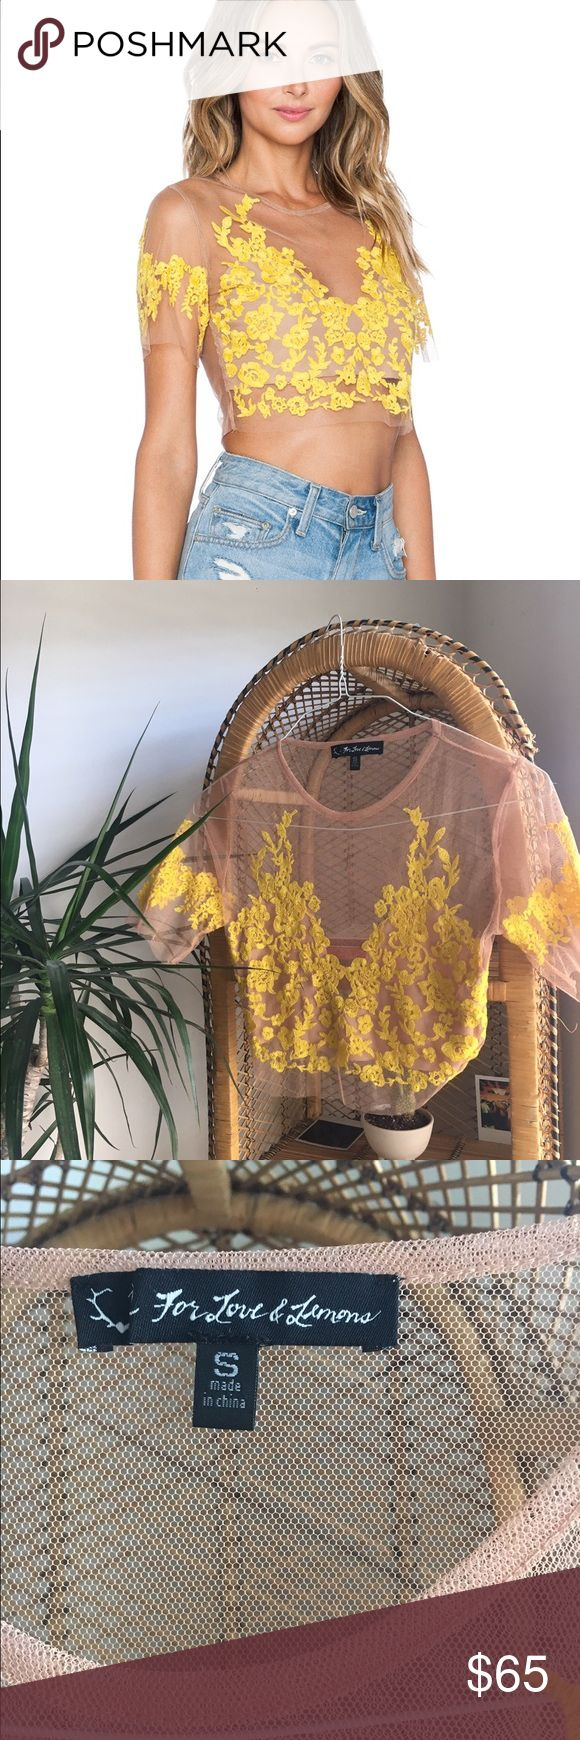 SOLD ON E BAY For love and lemons yellow floral For love and lemons mesh floral crop top! Never worn! Cheaper on E B A Y For Love and Lemons Tops